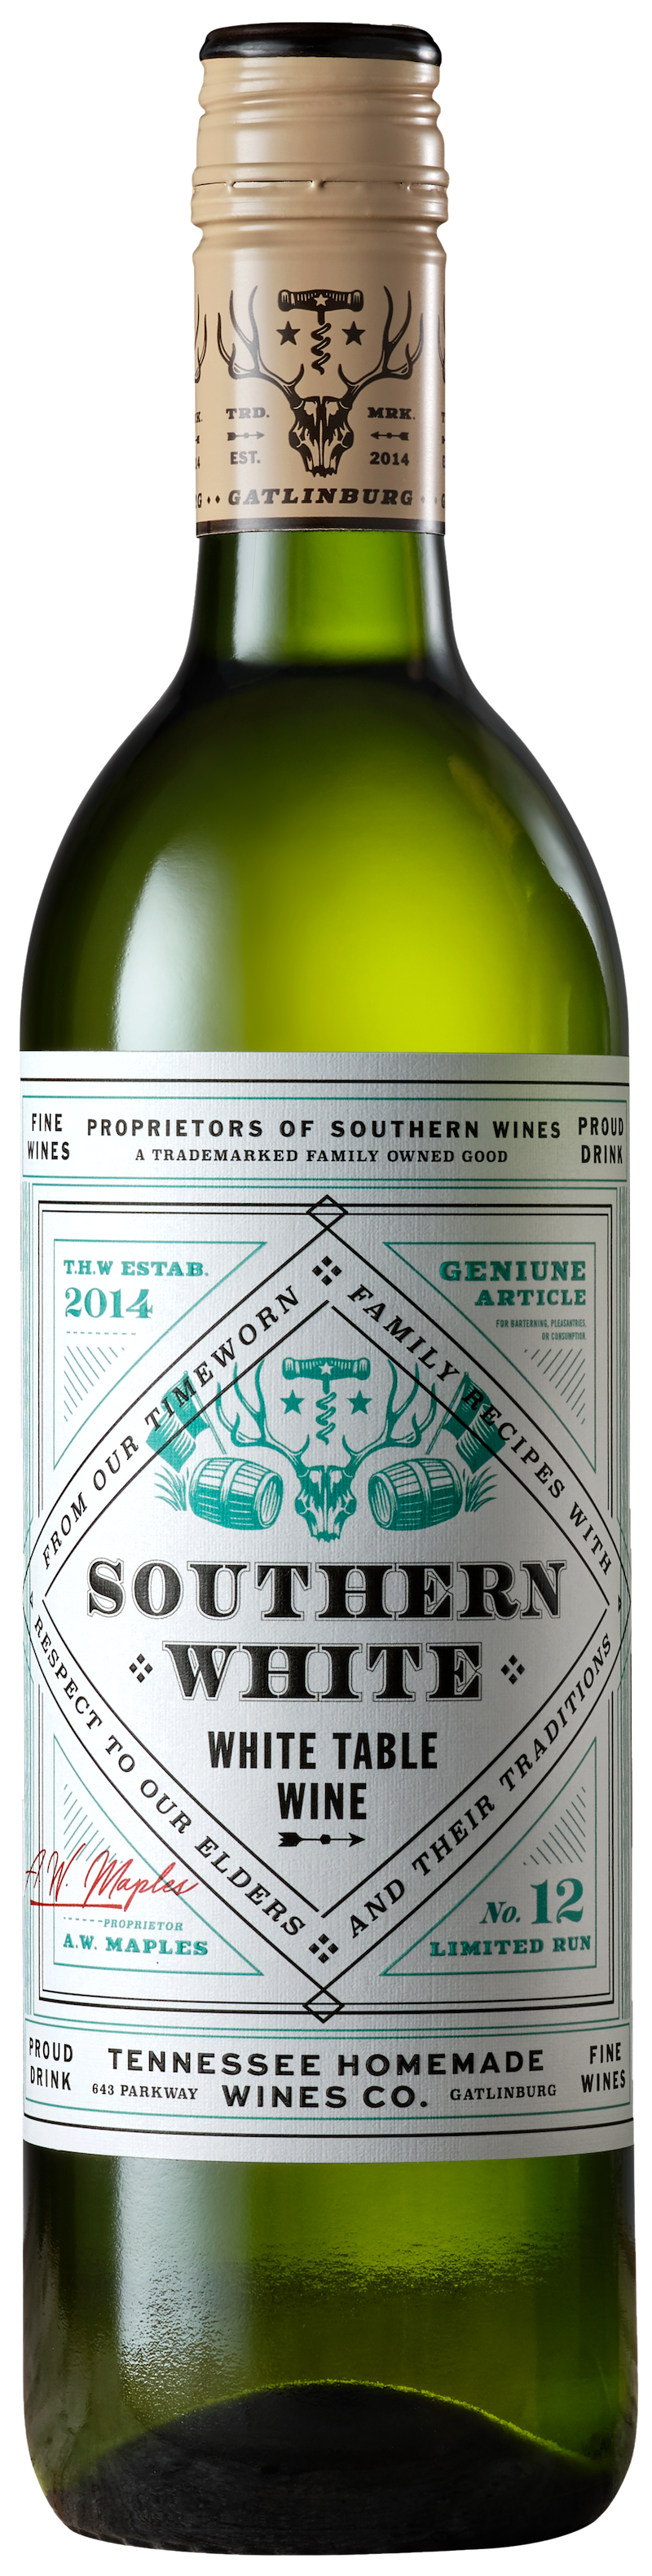 Tennessee Homemade Wines Southern White Wine